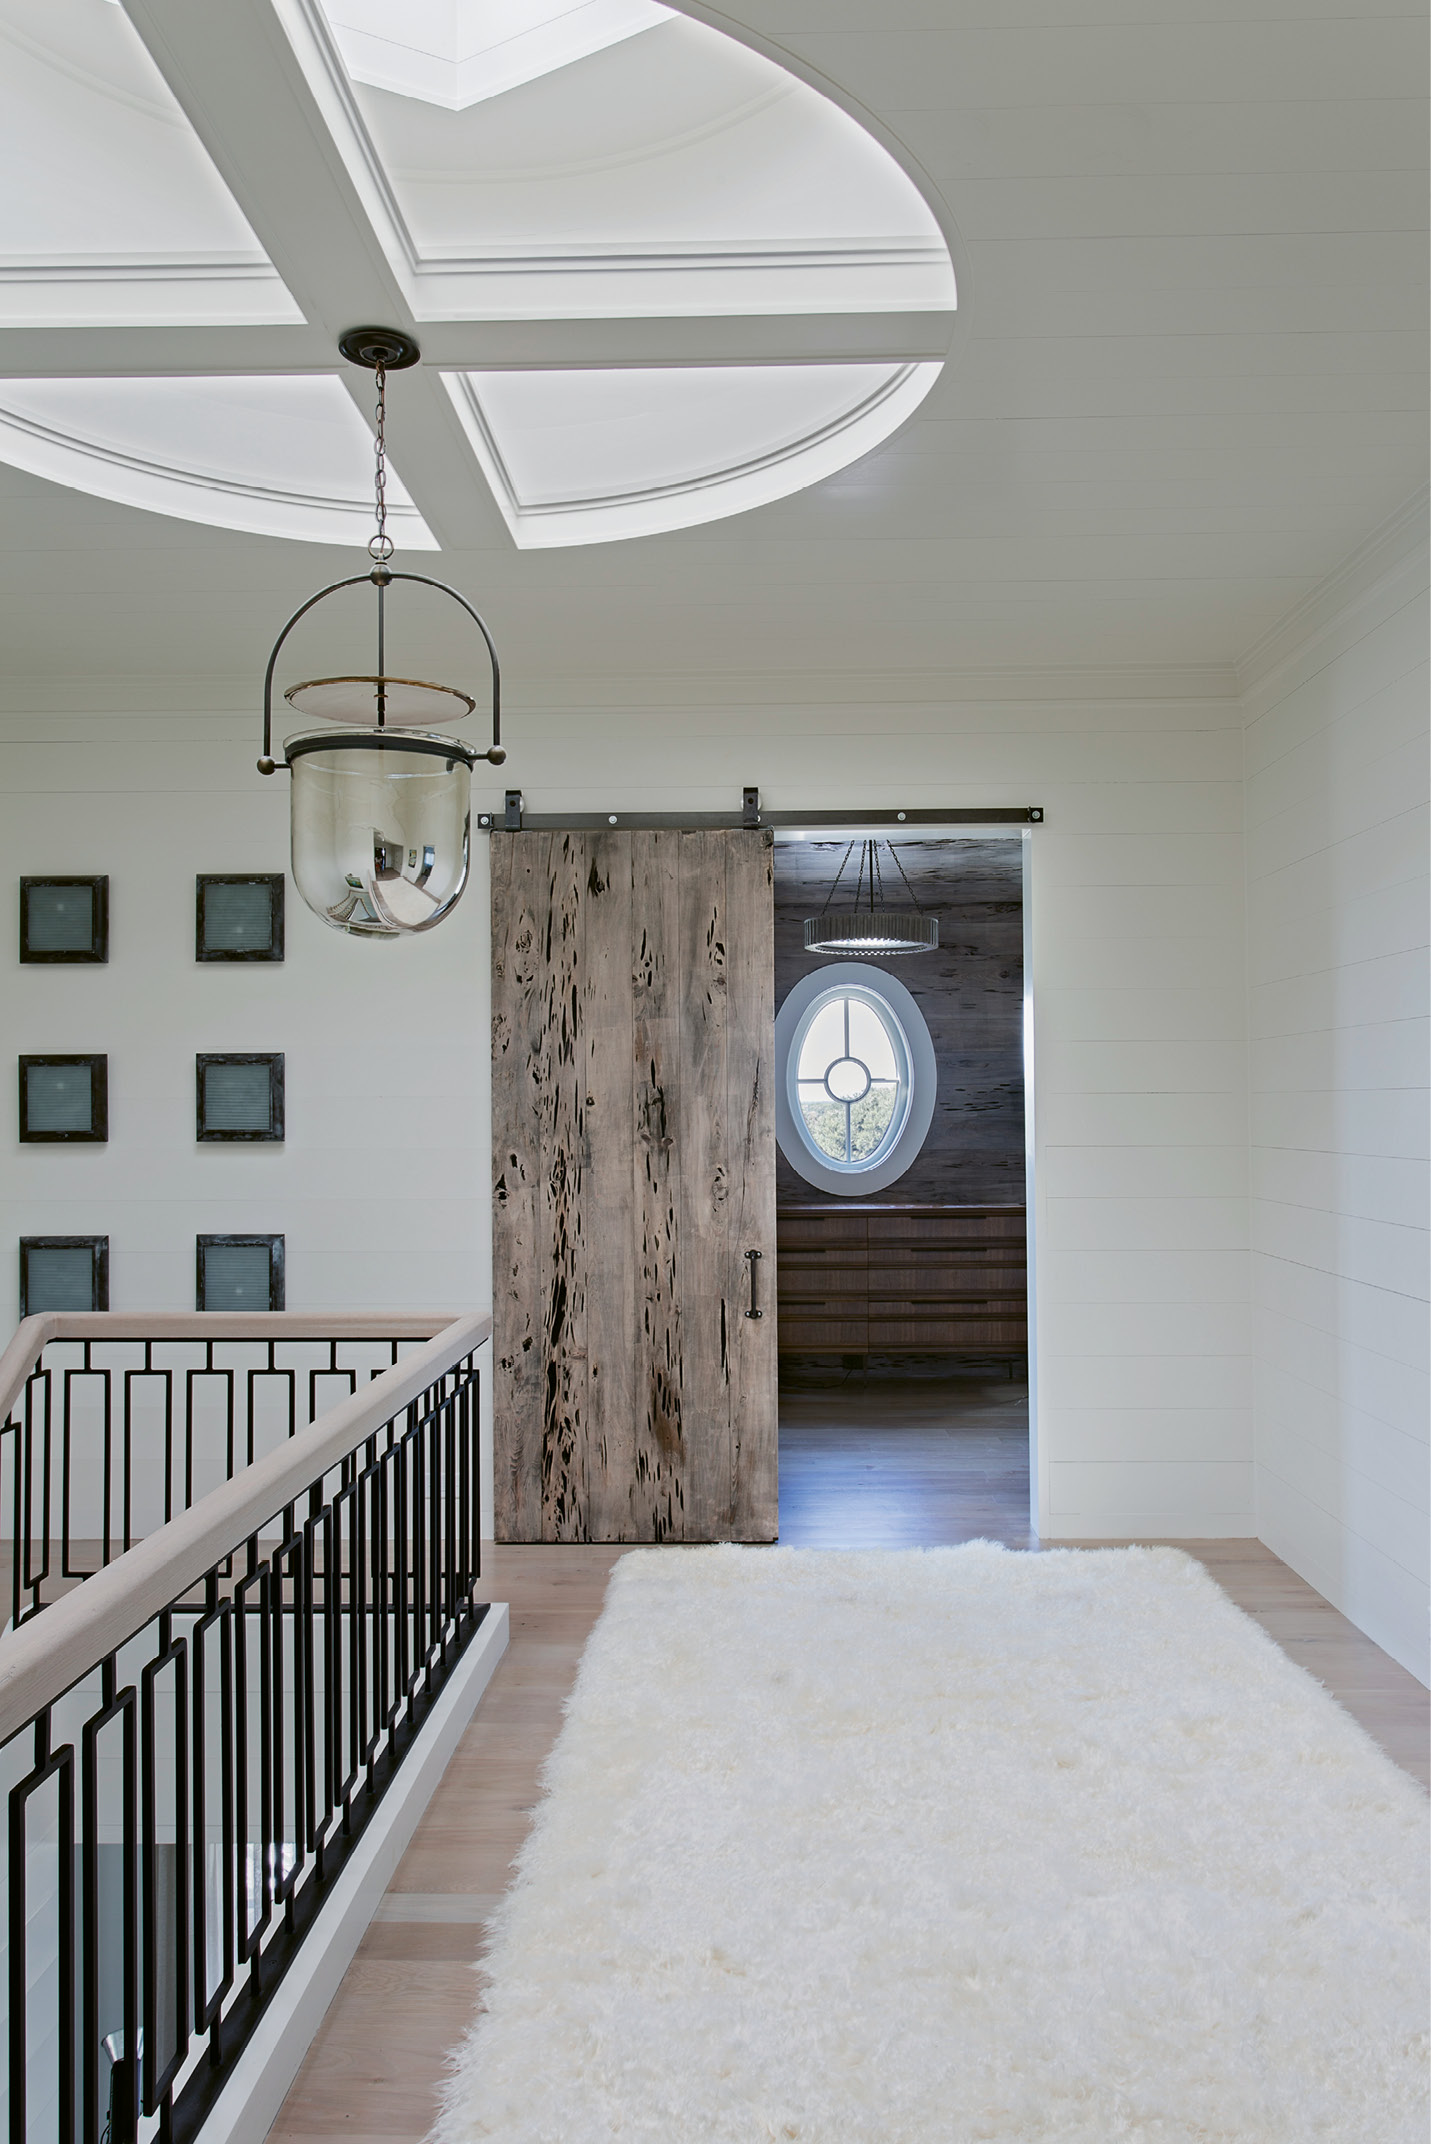 Haute Hallway: A medallion-shaped skylight presides over this second-floor hallway with a custom stair rail designed by David Smith.